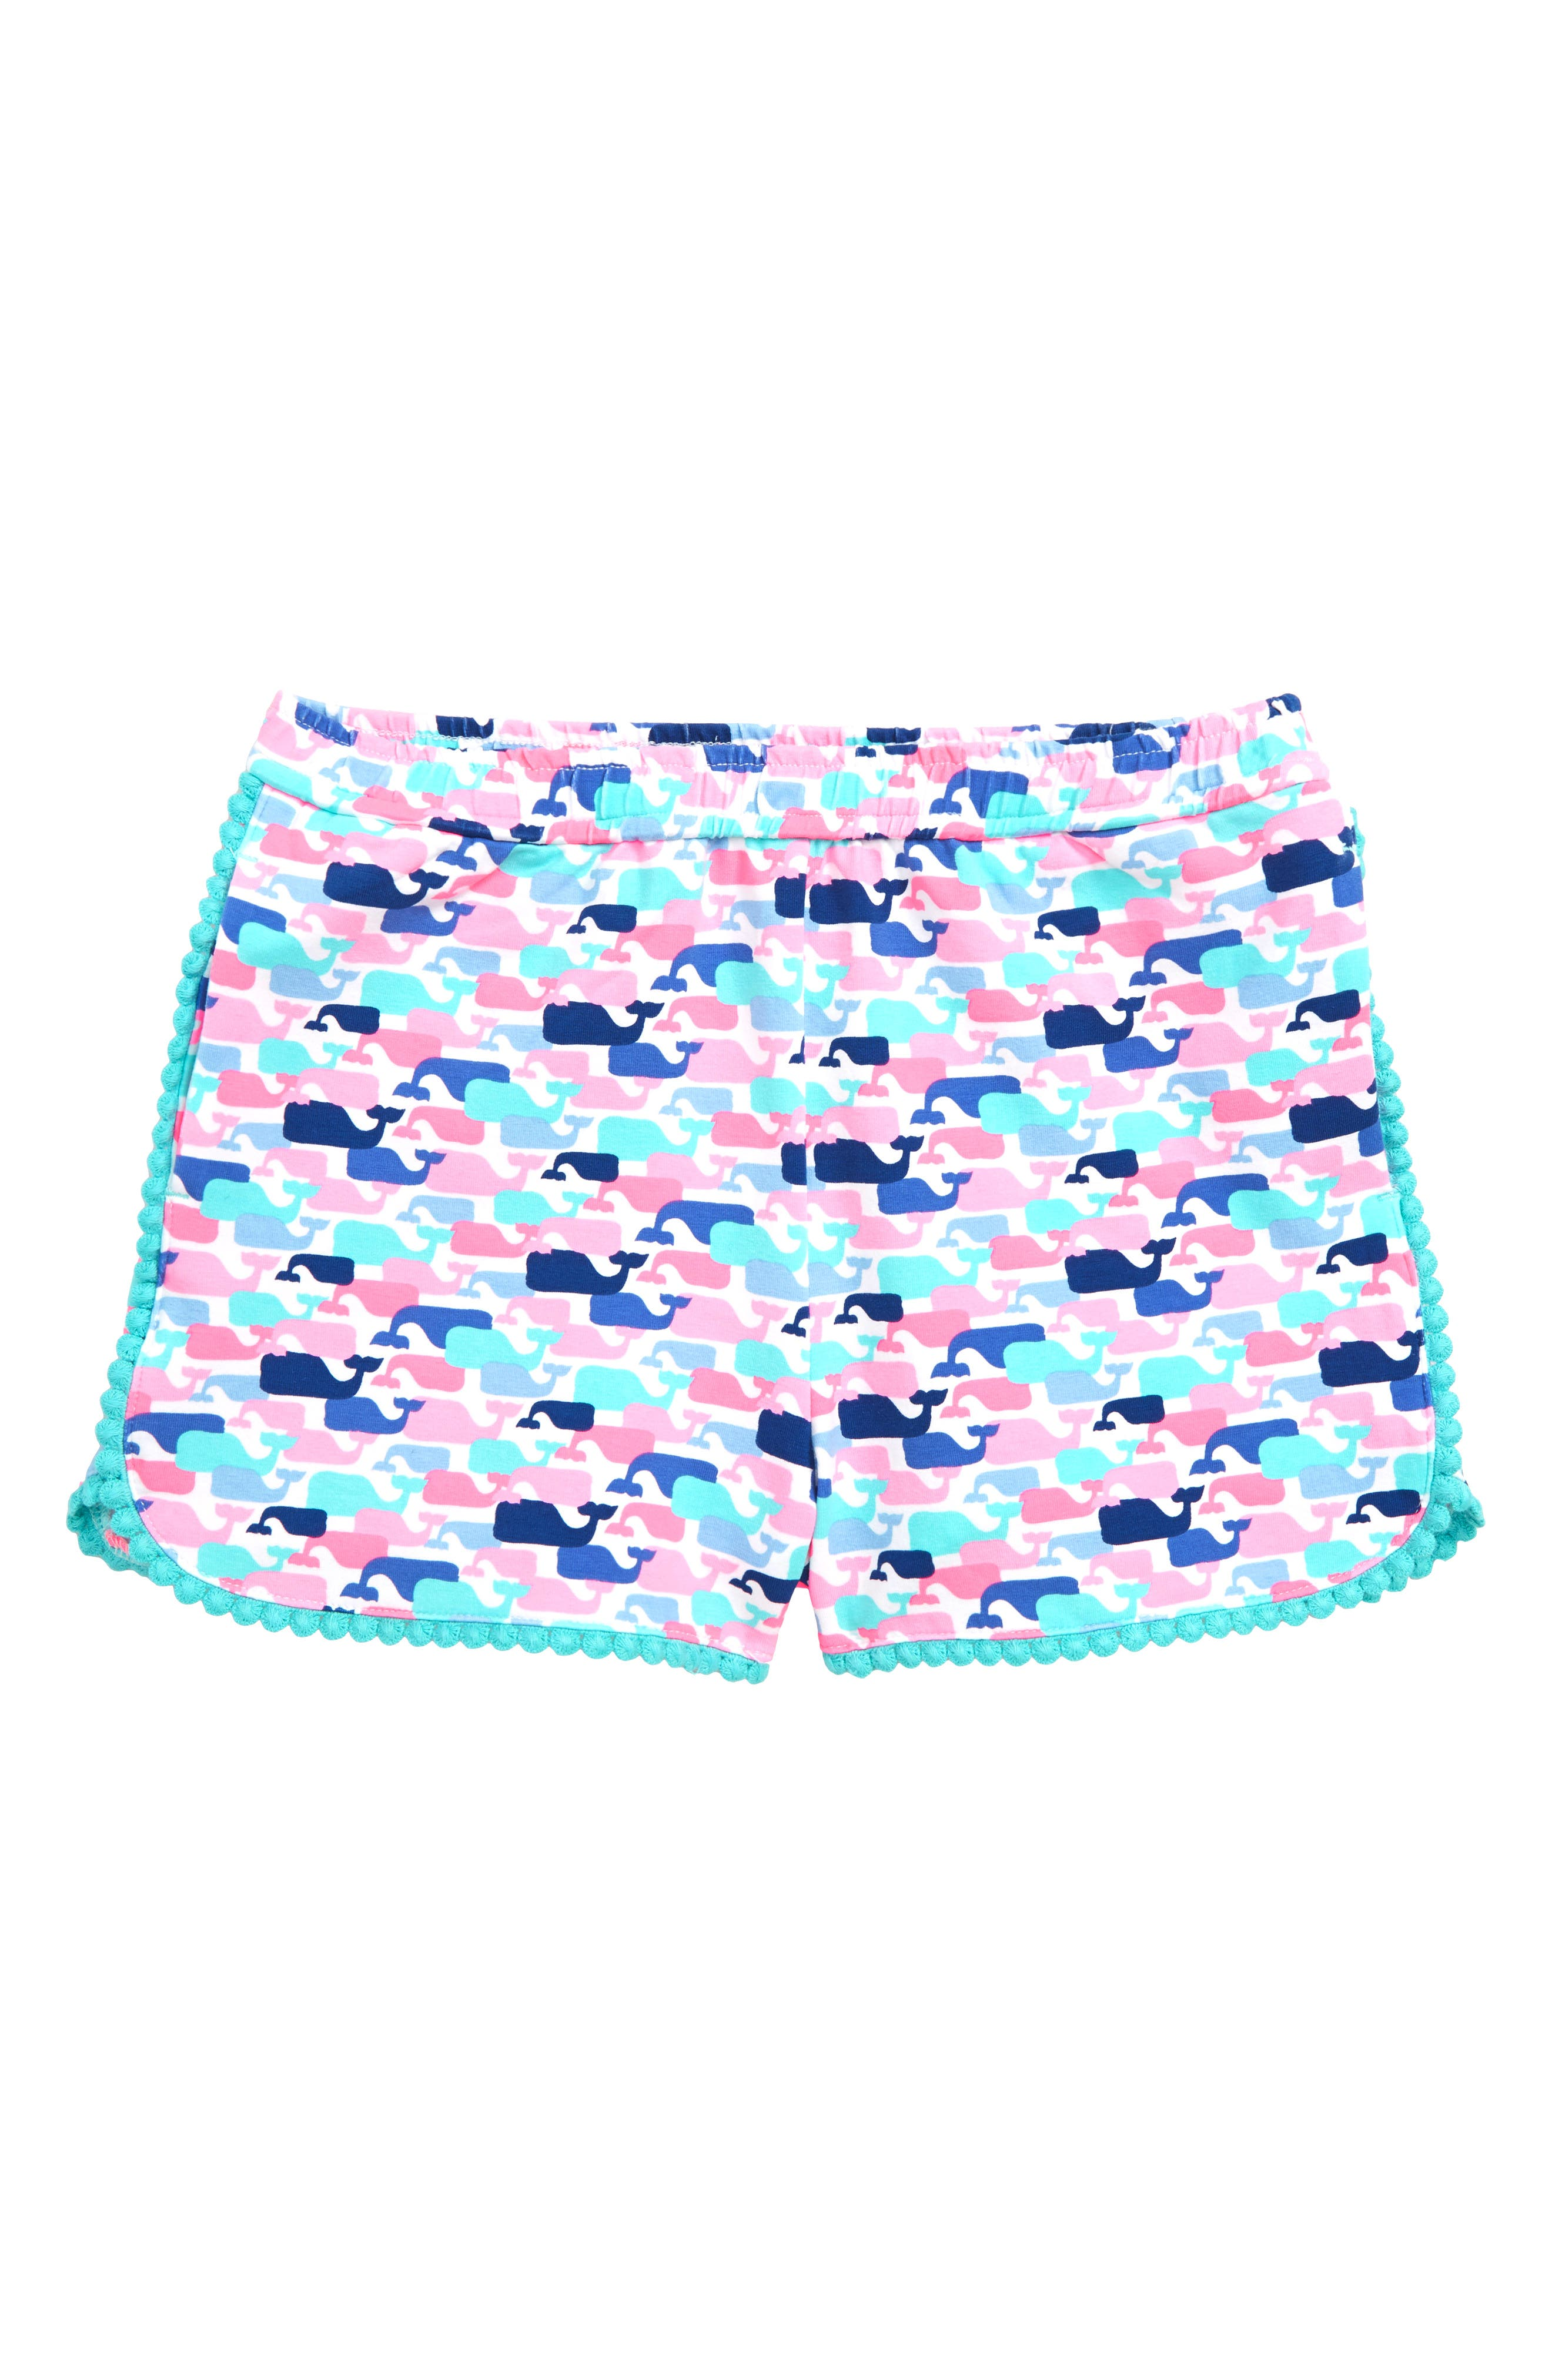 vineyard vines Whale Print Shorts (Toddler Girls, Little Girls & Big Girls)